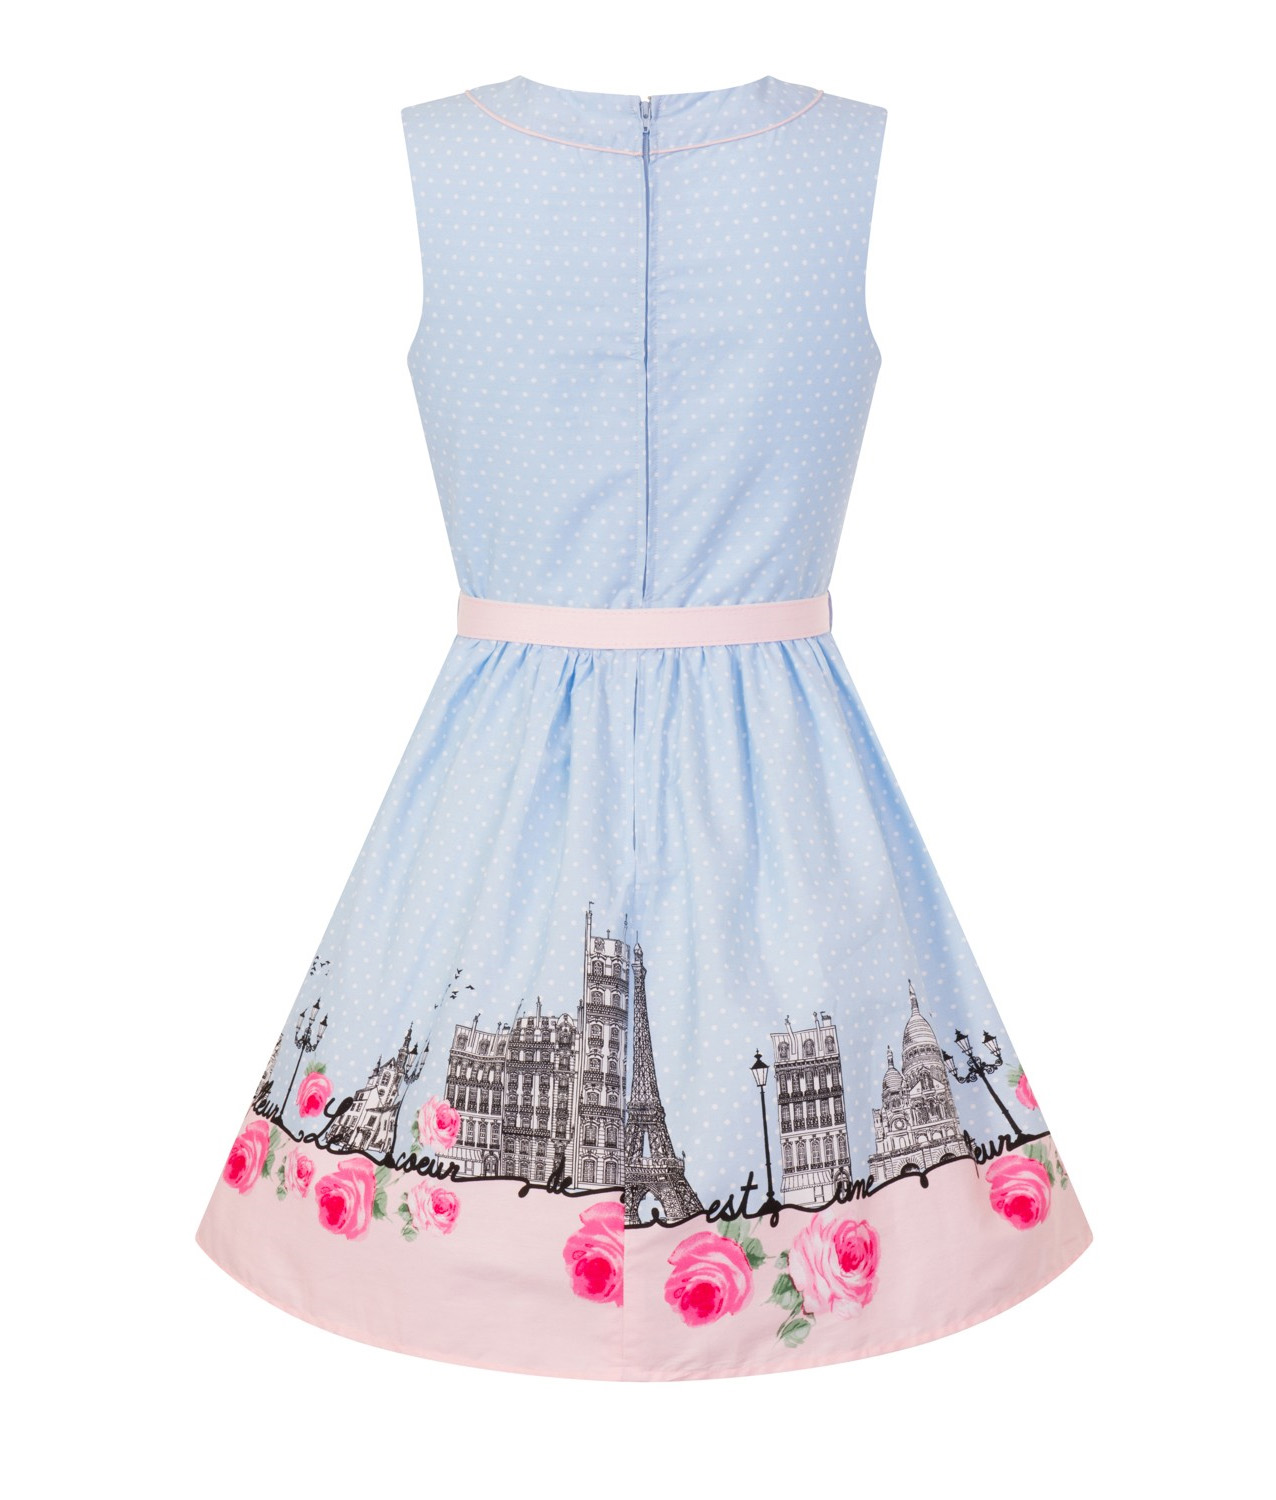 Hell-Bunny-50s-Vintage-Blue-Polka-Dot-PANAME-Mini-Dress-Paris-All-Sizes thumbnail 13